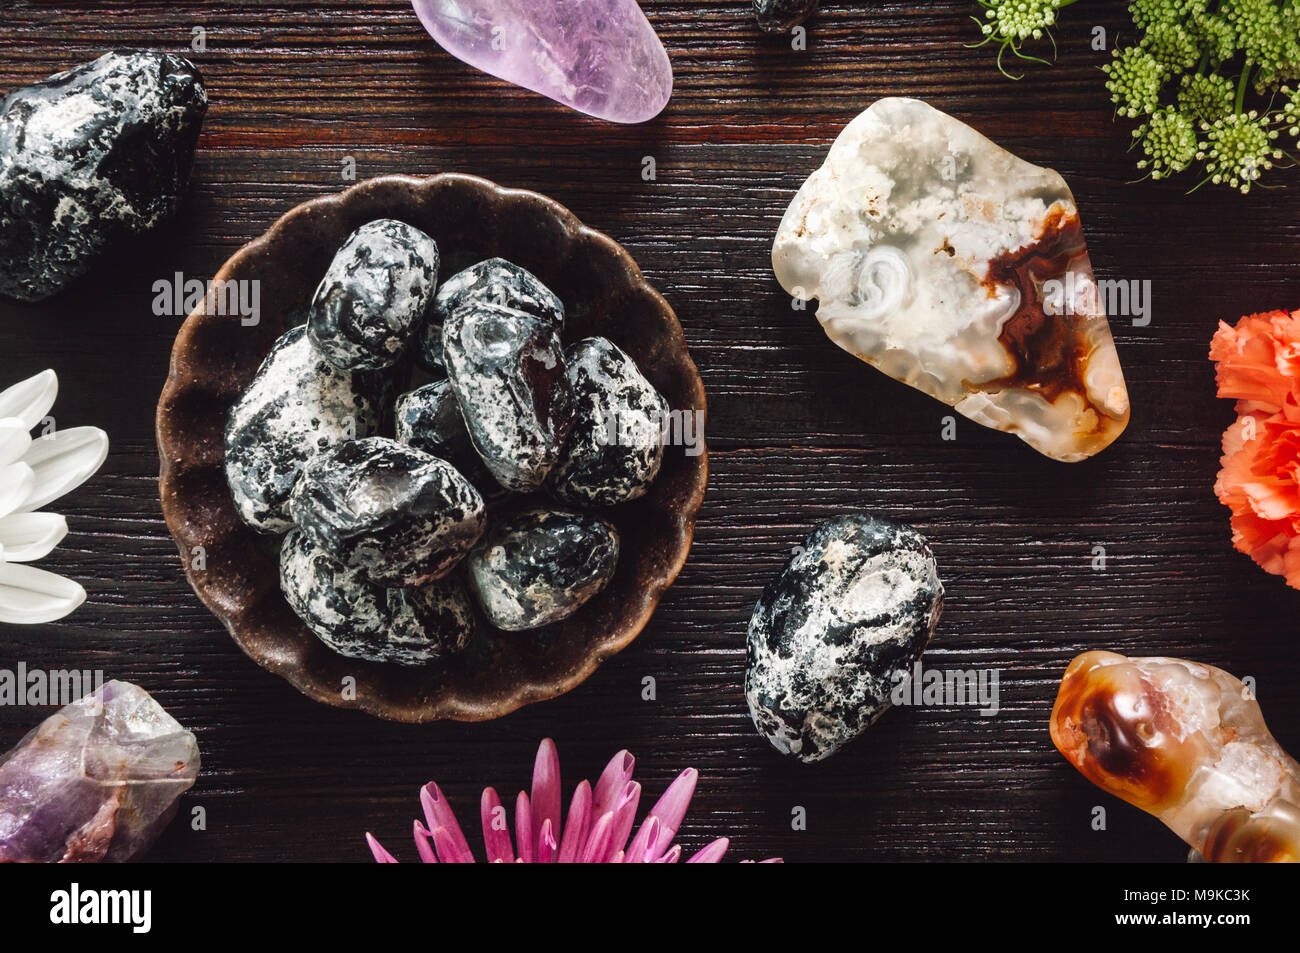 Stones of Aries including, Fire Agate, Apache Tears, and Amethyst - Stock Image